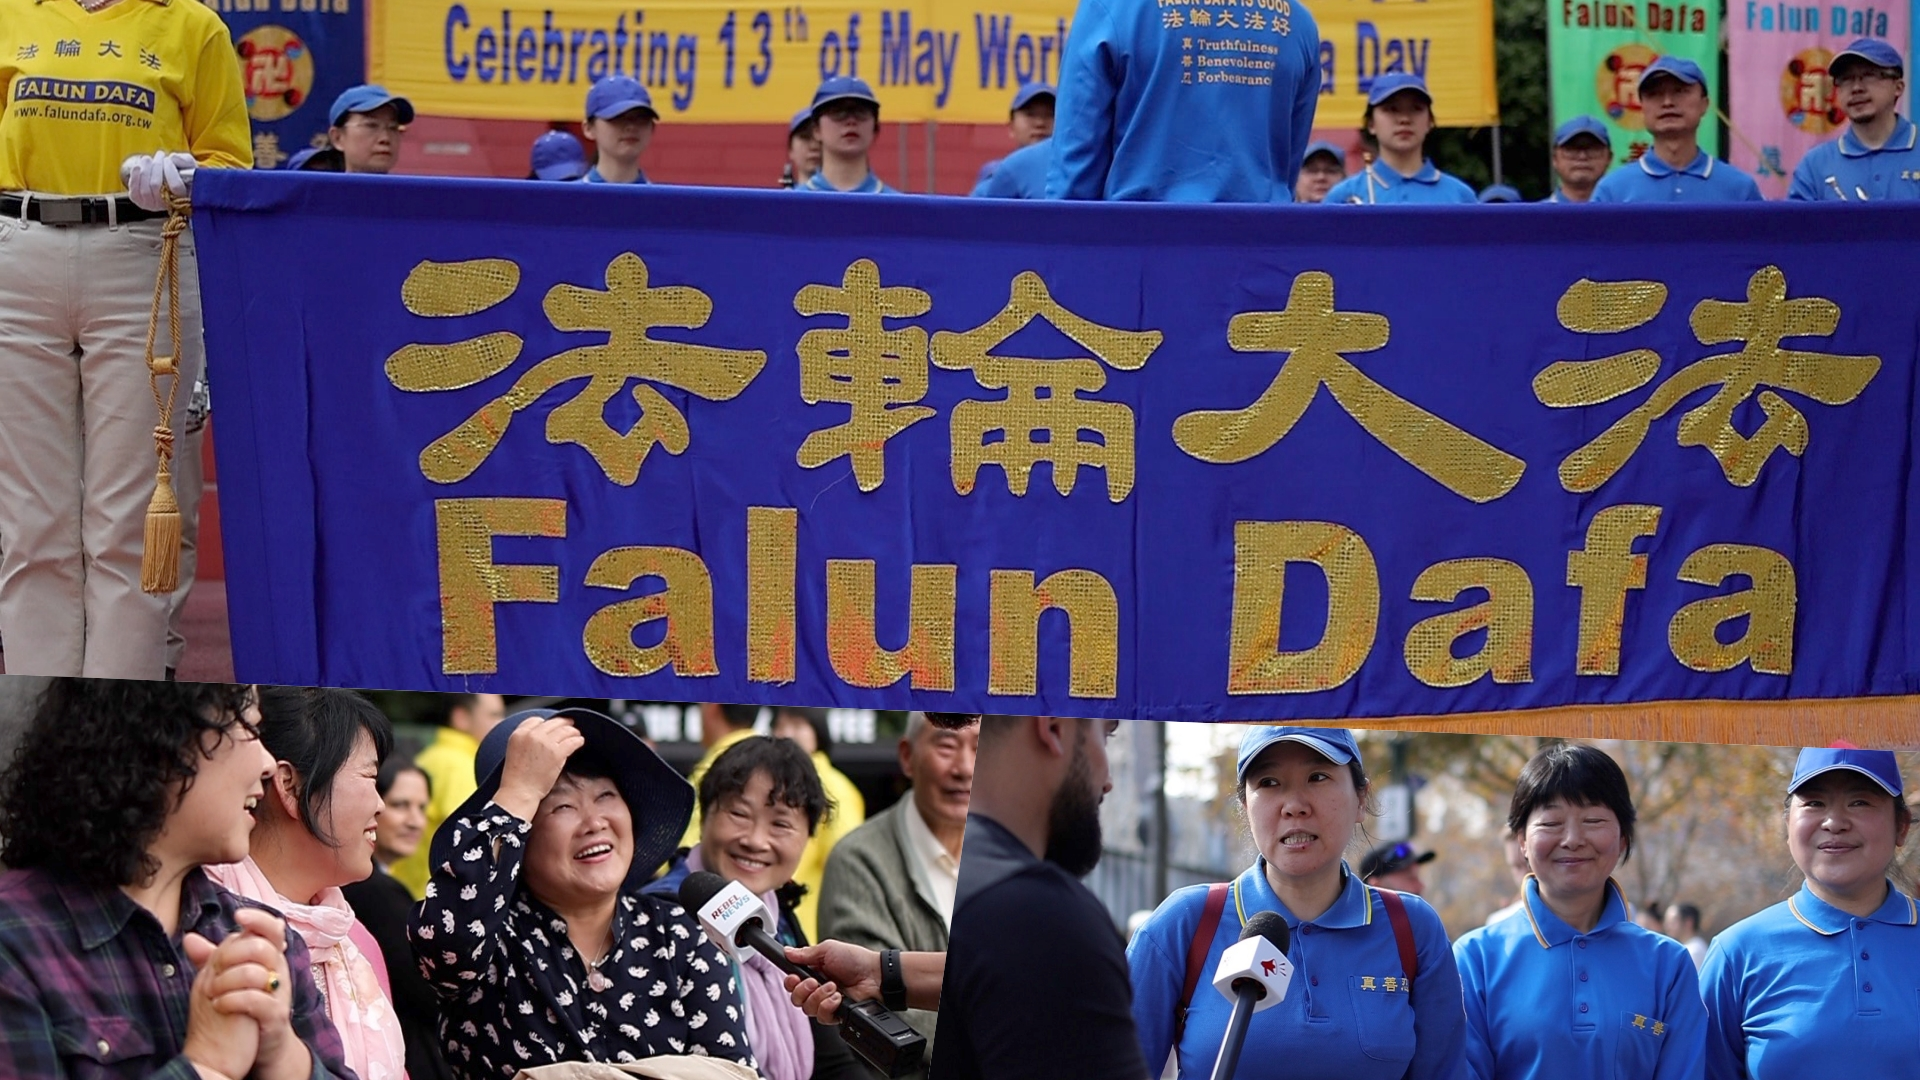 Falun Gong practitioners speak out about Communist China on their special day